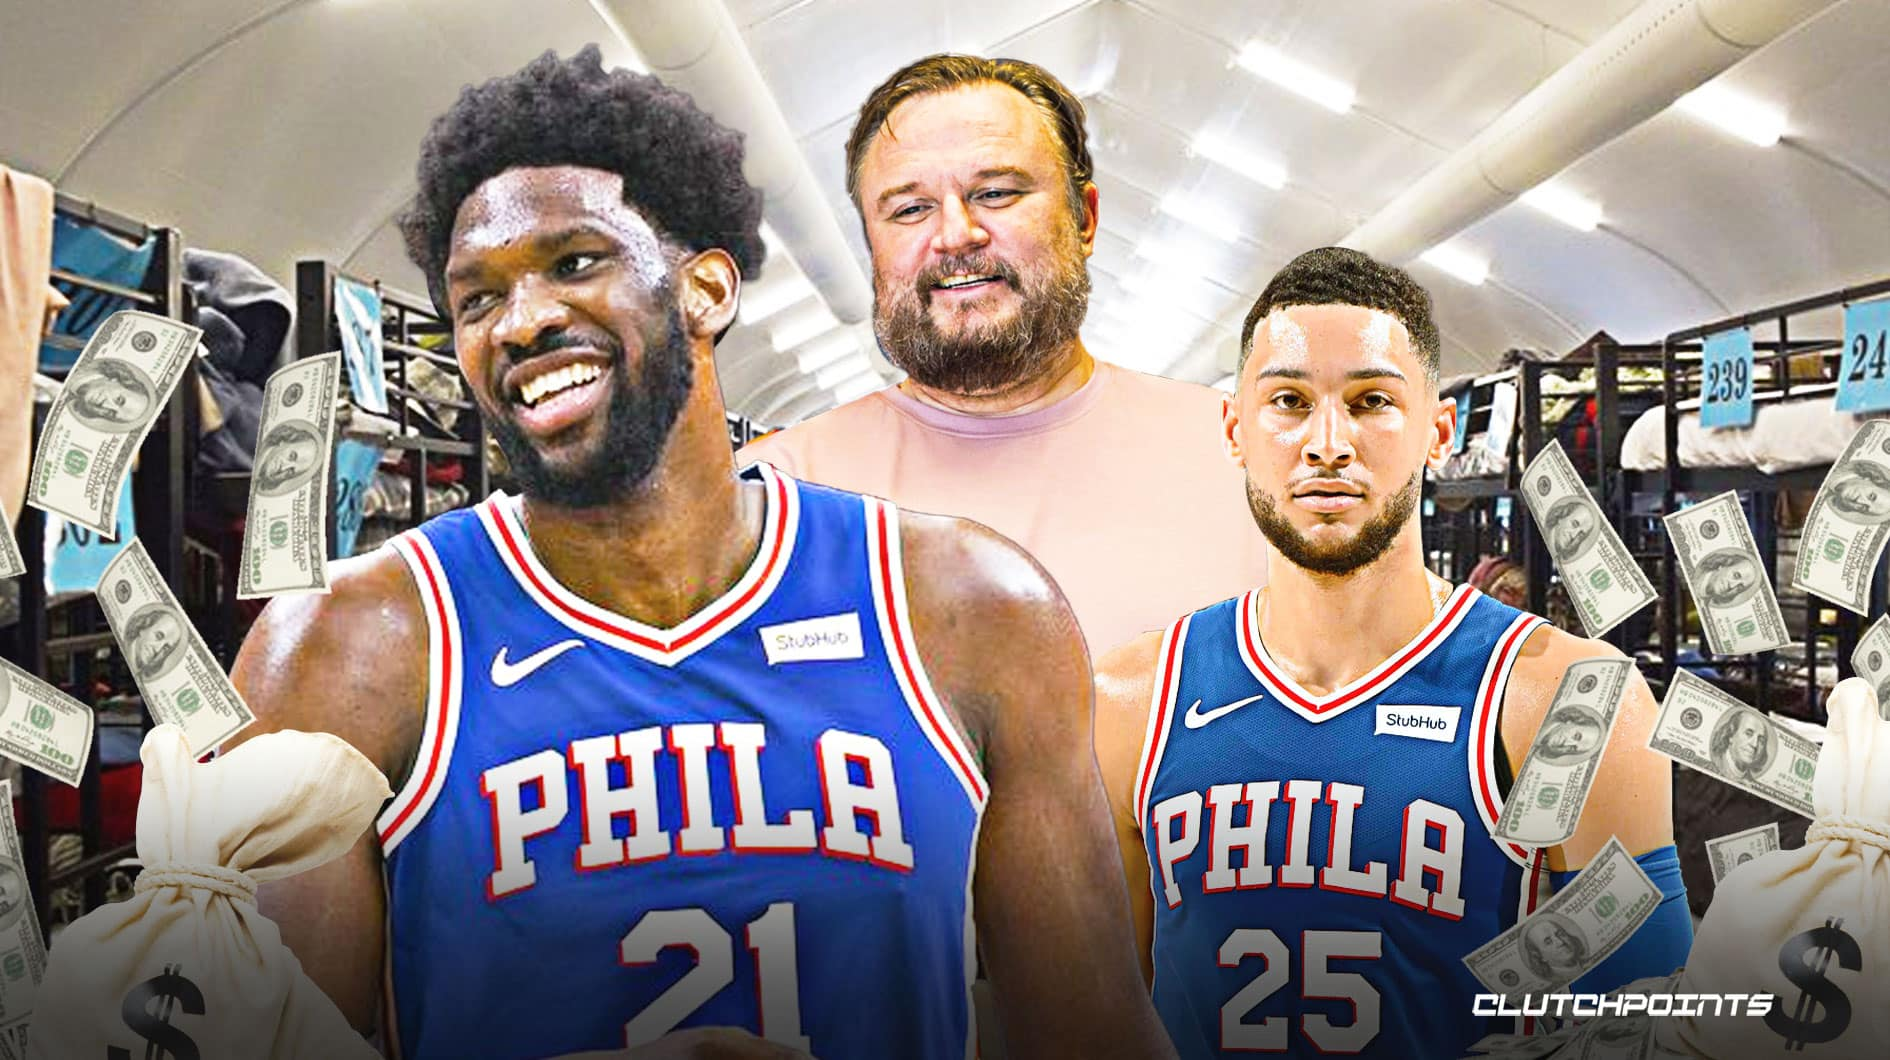 Sixers follow Joel Embiid's lead, donate $100,000 to same homeless groups